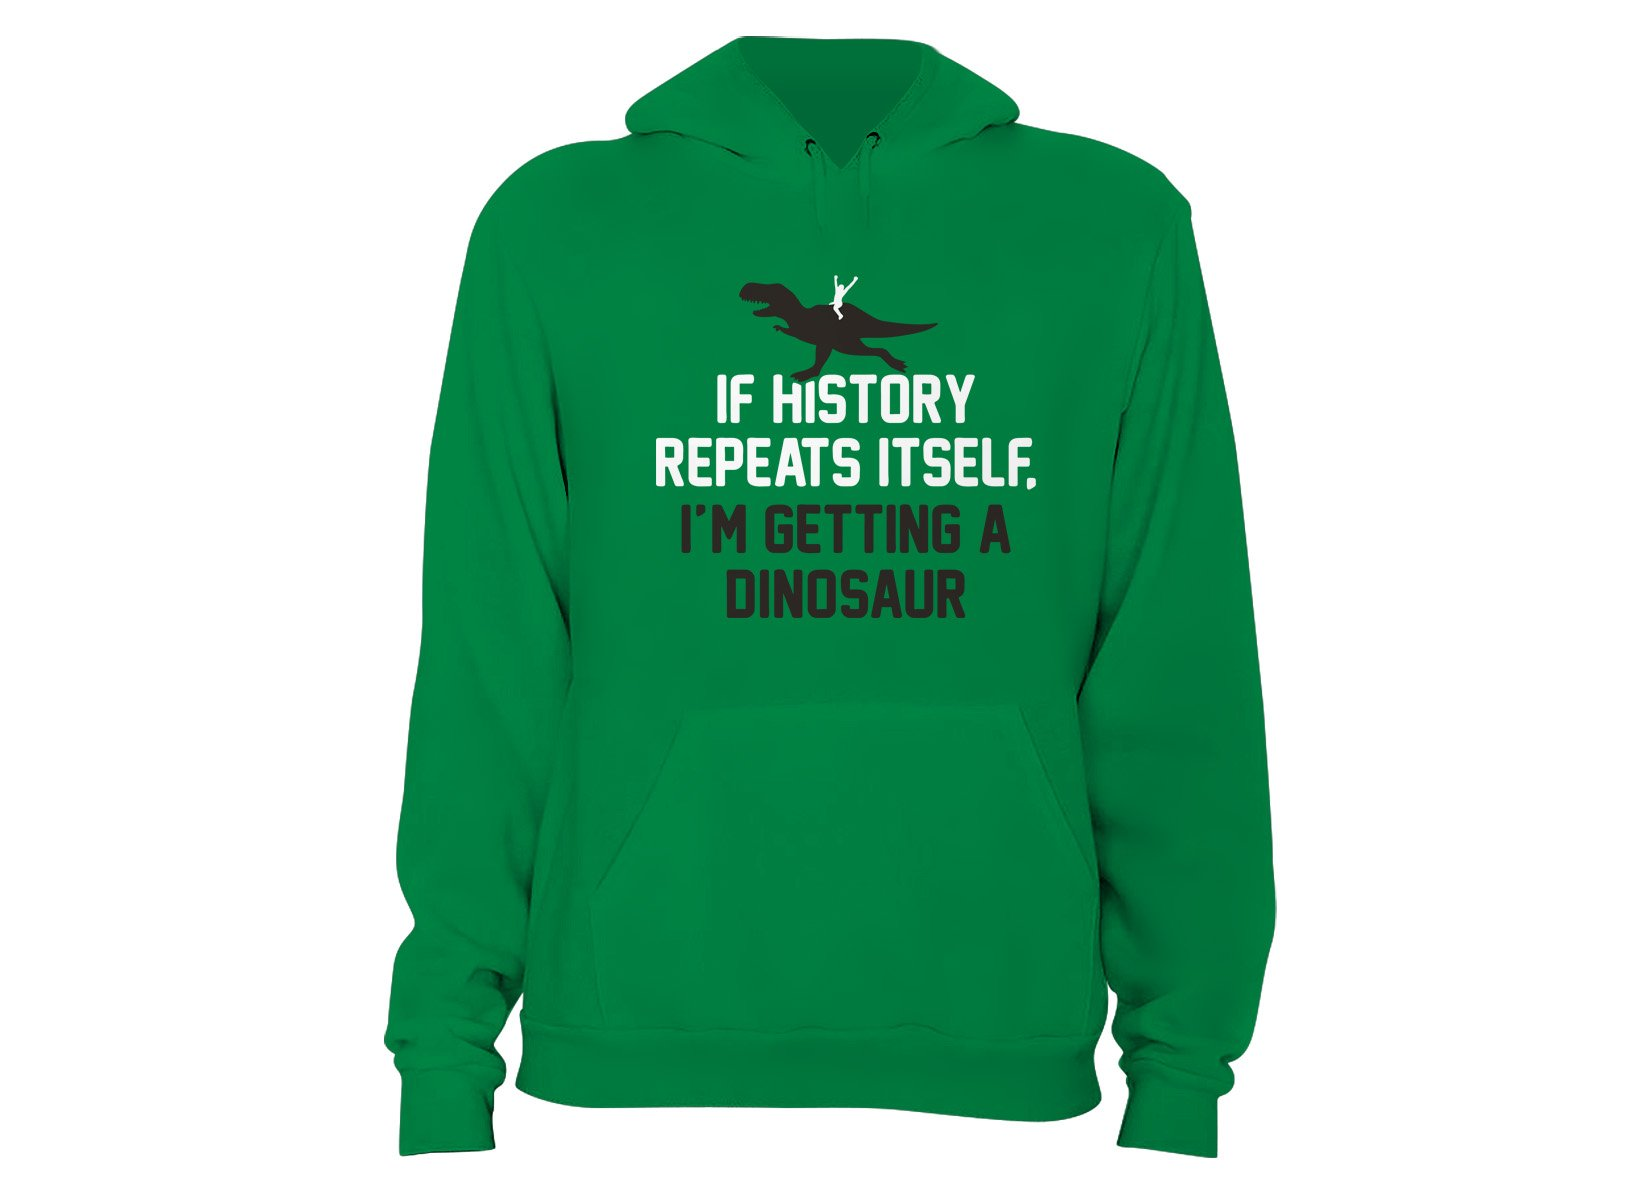 If History Repeats Itself, I'm Getting A Dinosaur on Hoodie